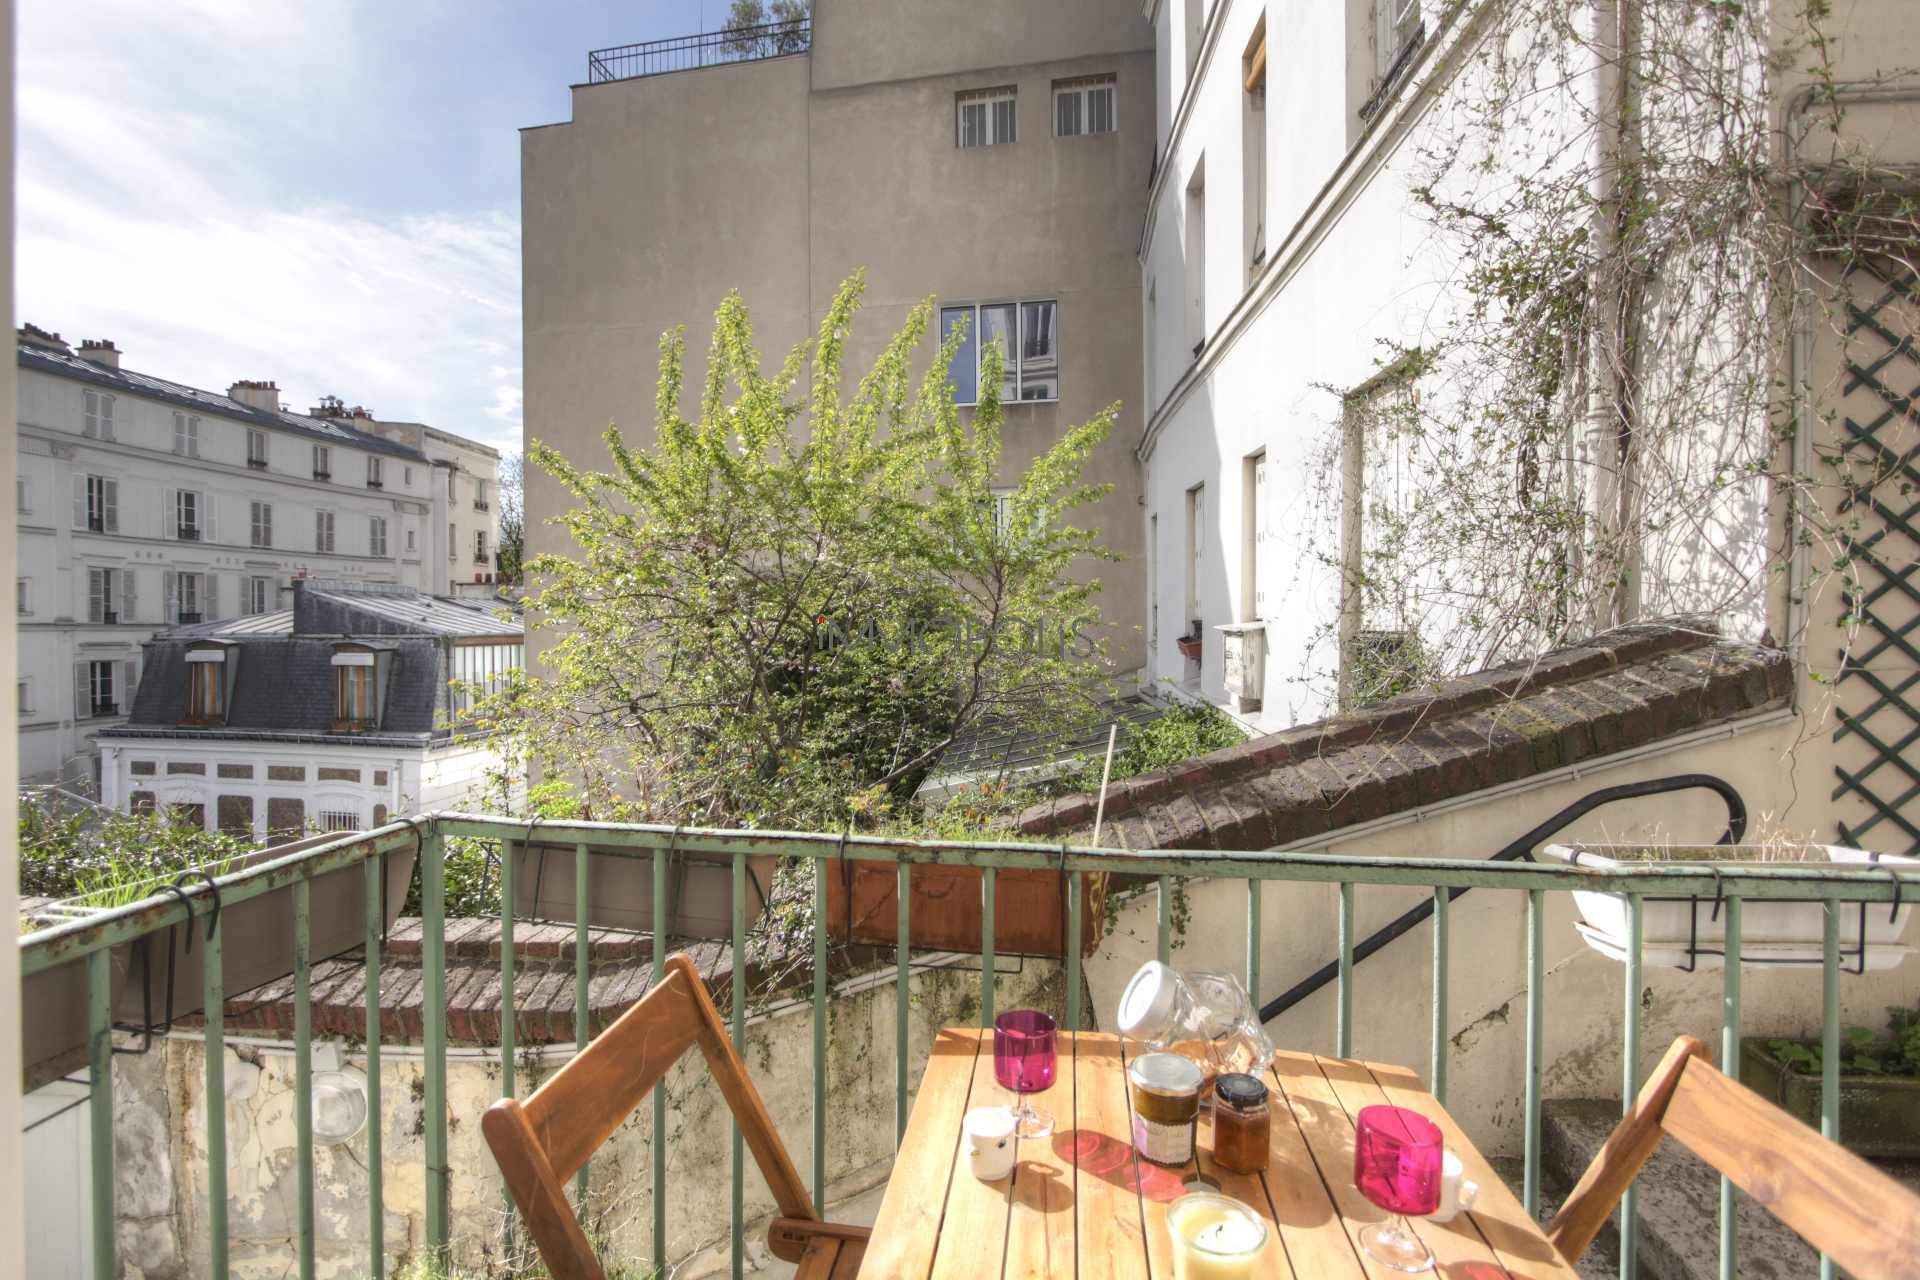 Exceptional in Montmartre (rue Gabrielle): refurbished open space, sumptuous fittings, with balcony and open view! 2